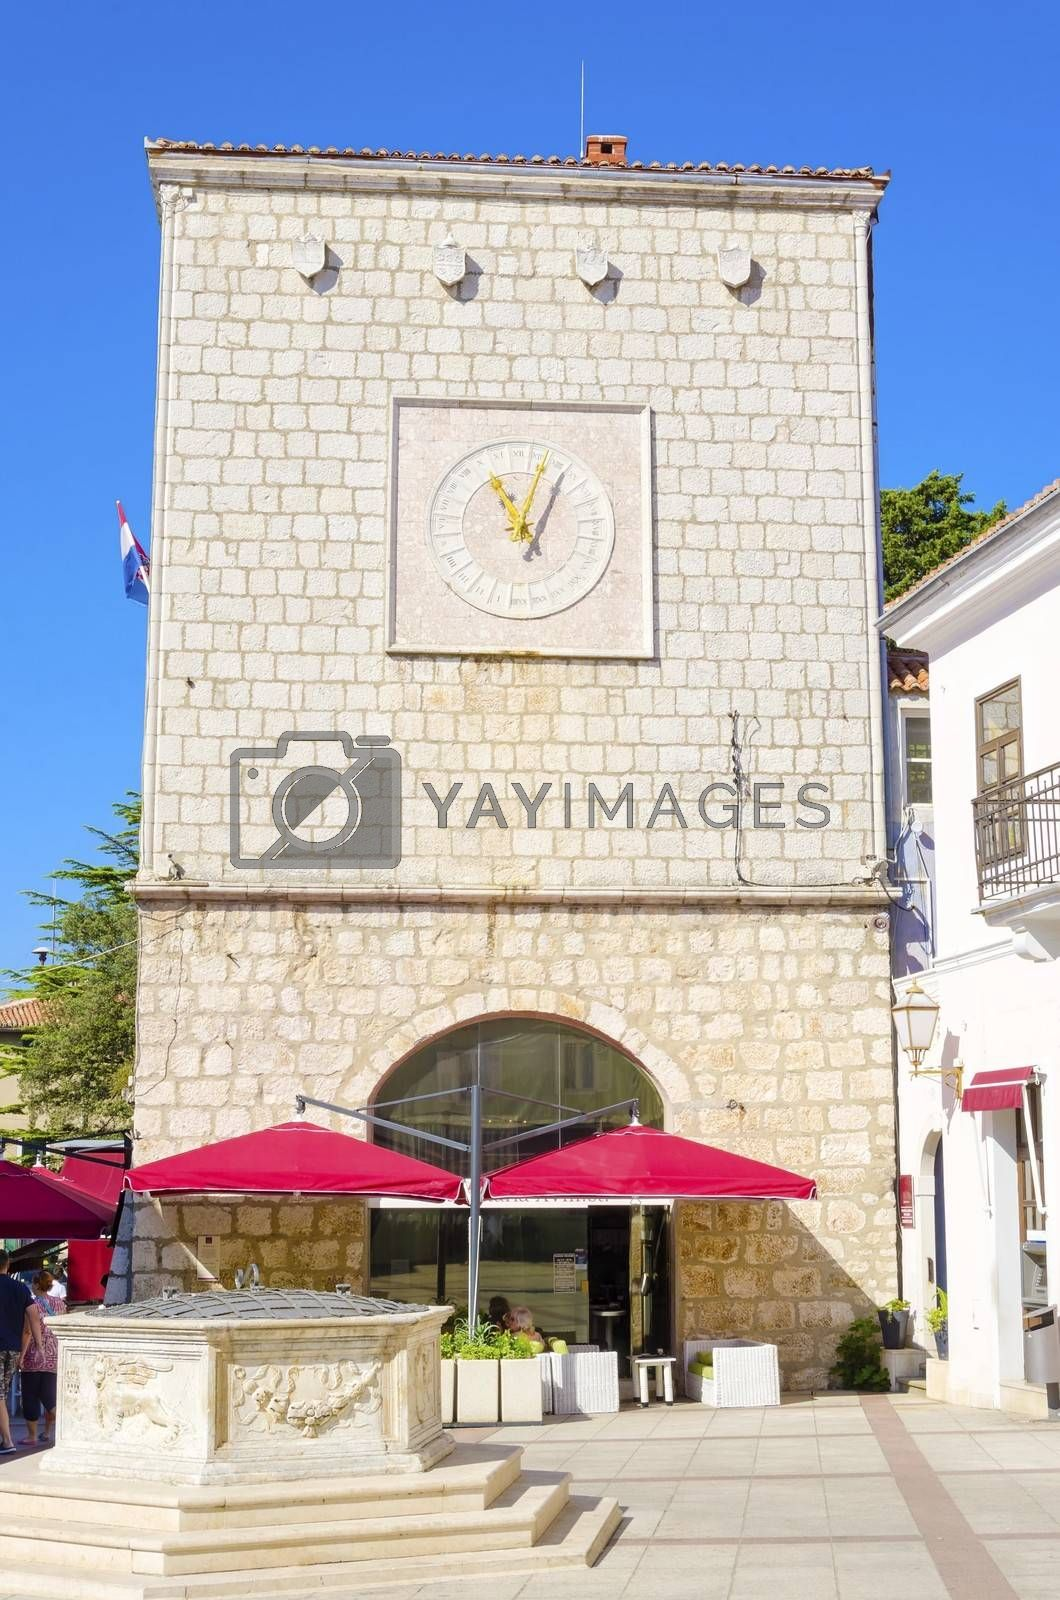 The Krk Town Council Hall clock at Vale Market place on island Krk, Croatia and the six-sided well. A rook medieval structure with a clock with latin numbers and yellow pointers.